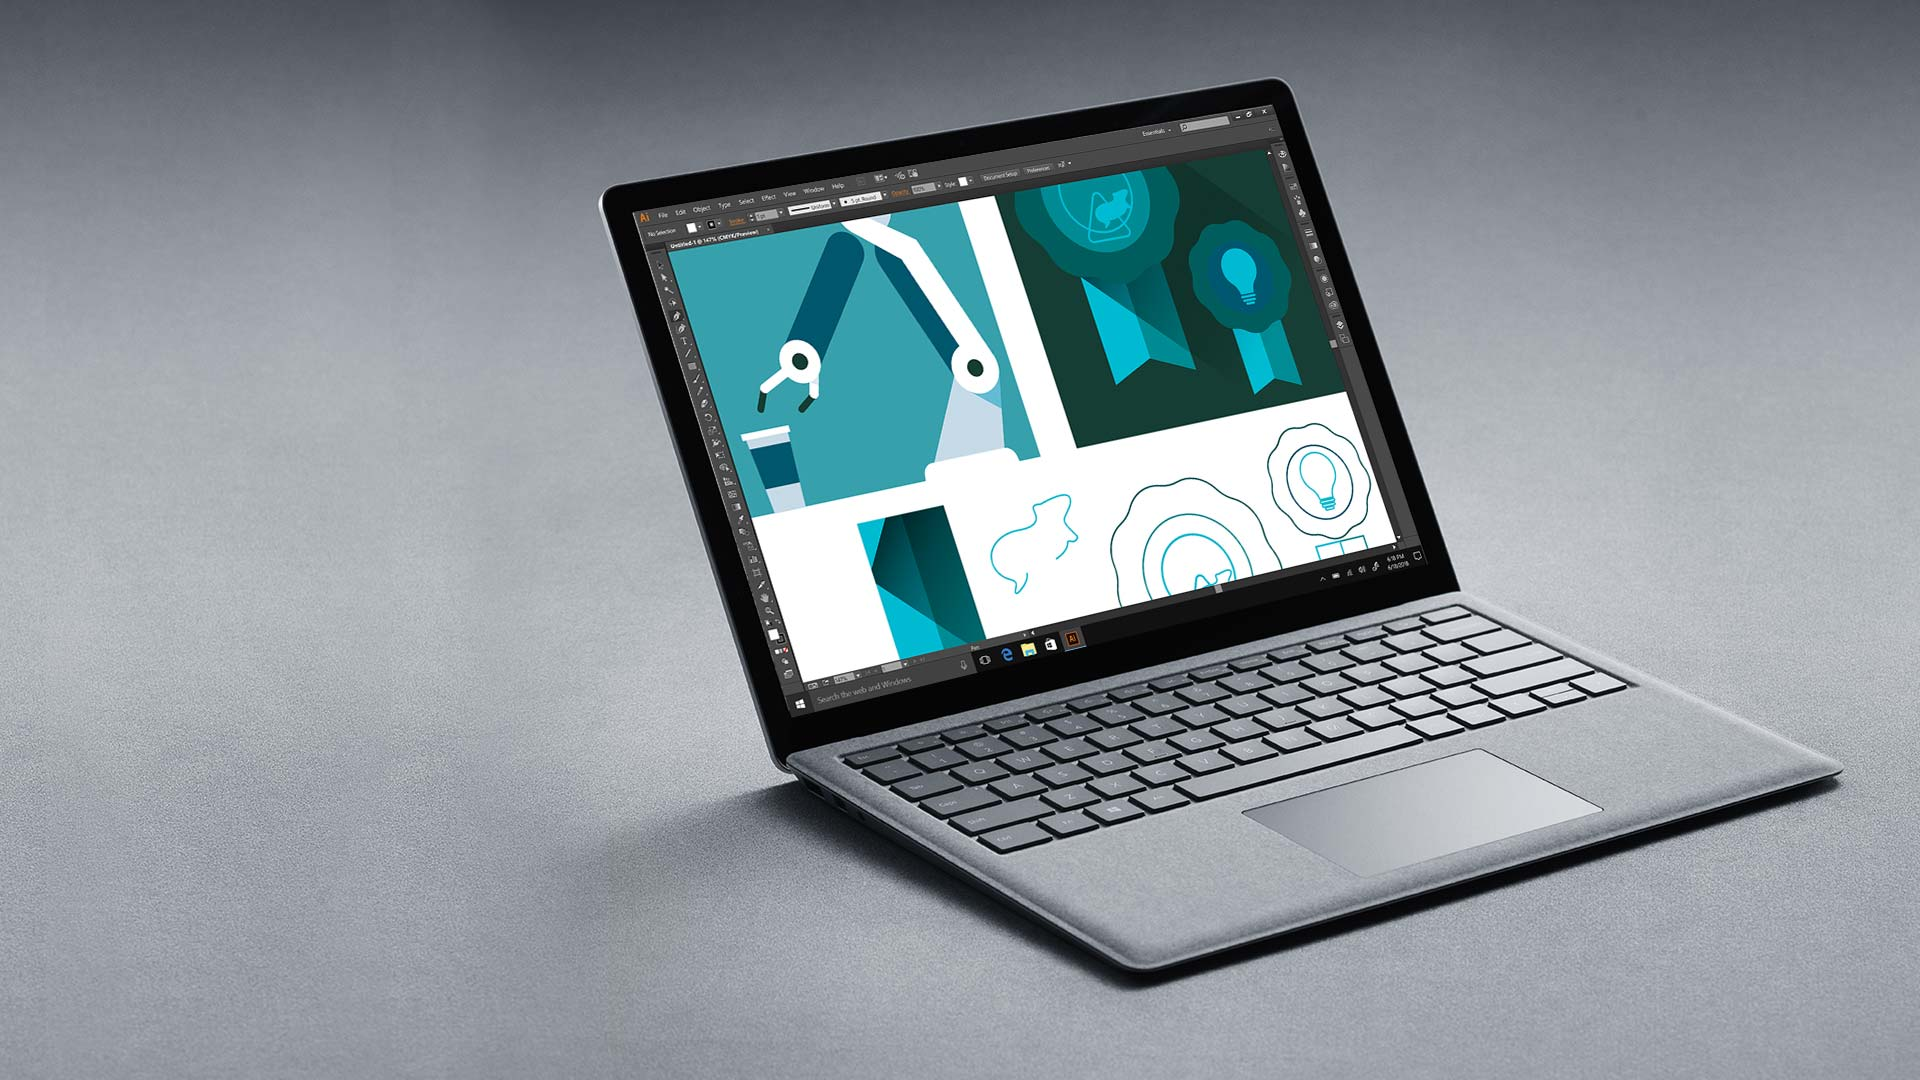 Surface Laptop in Platin Grau mit Adobe Illustrator-Bildschirm.